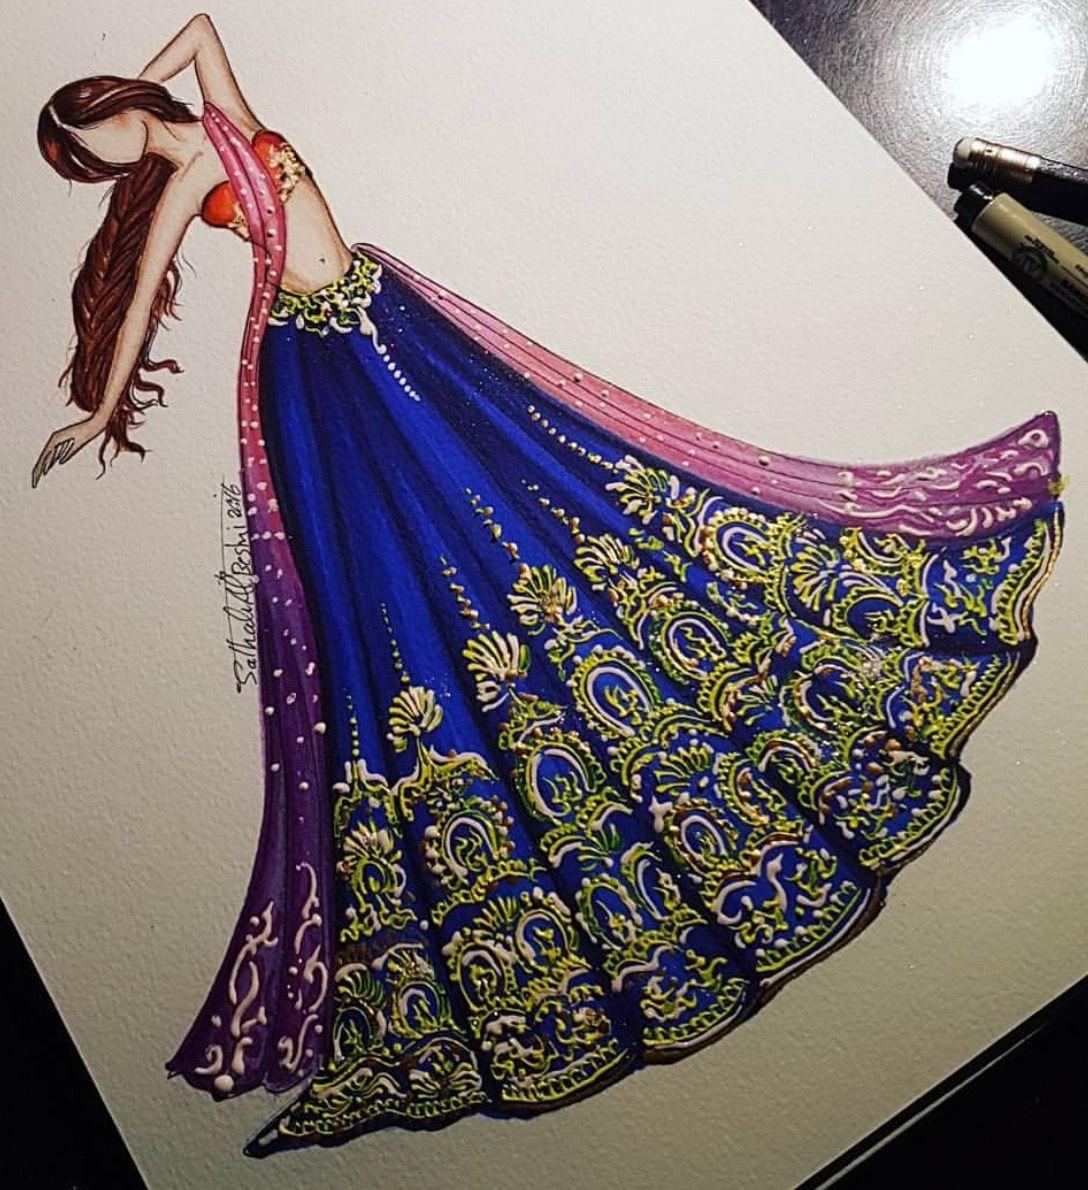 Lehenga Salhah1805 Be Inspirational Mz Manerz Being Well Dre In 2020 Fashion Illustration Dresses Fashion Art Illustration Fashion Illustration Sketches Dresses